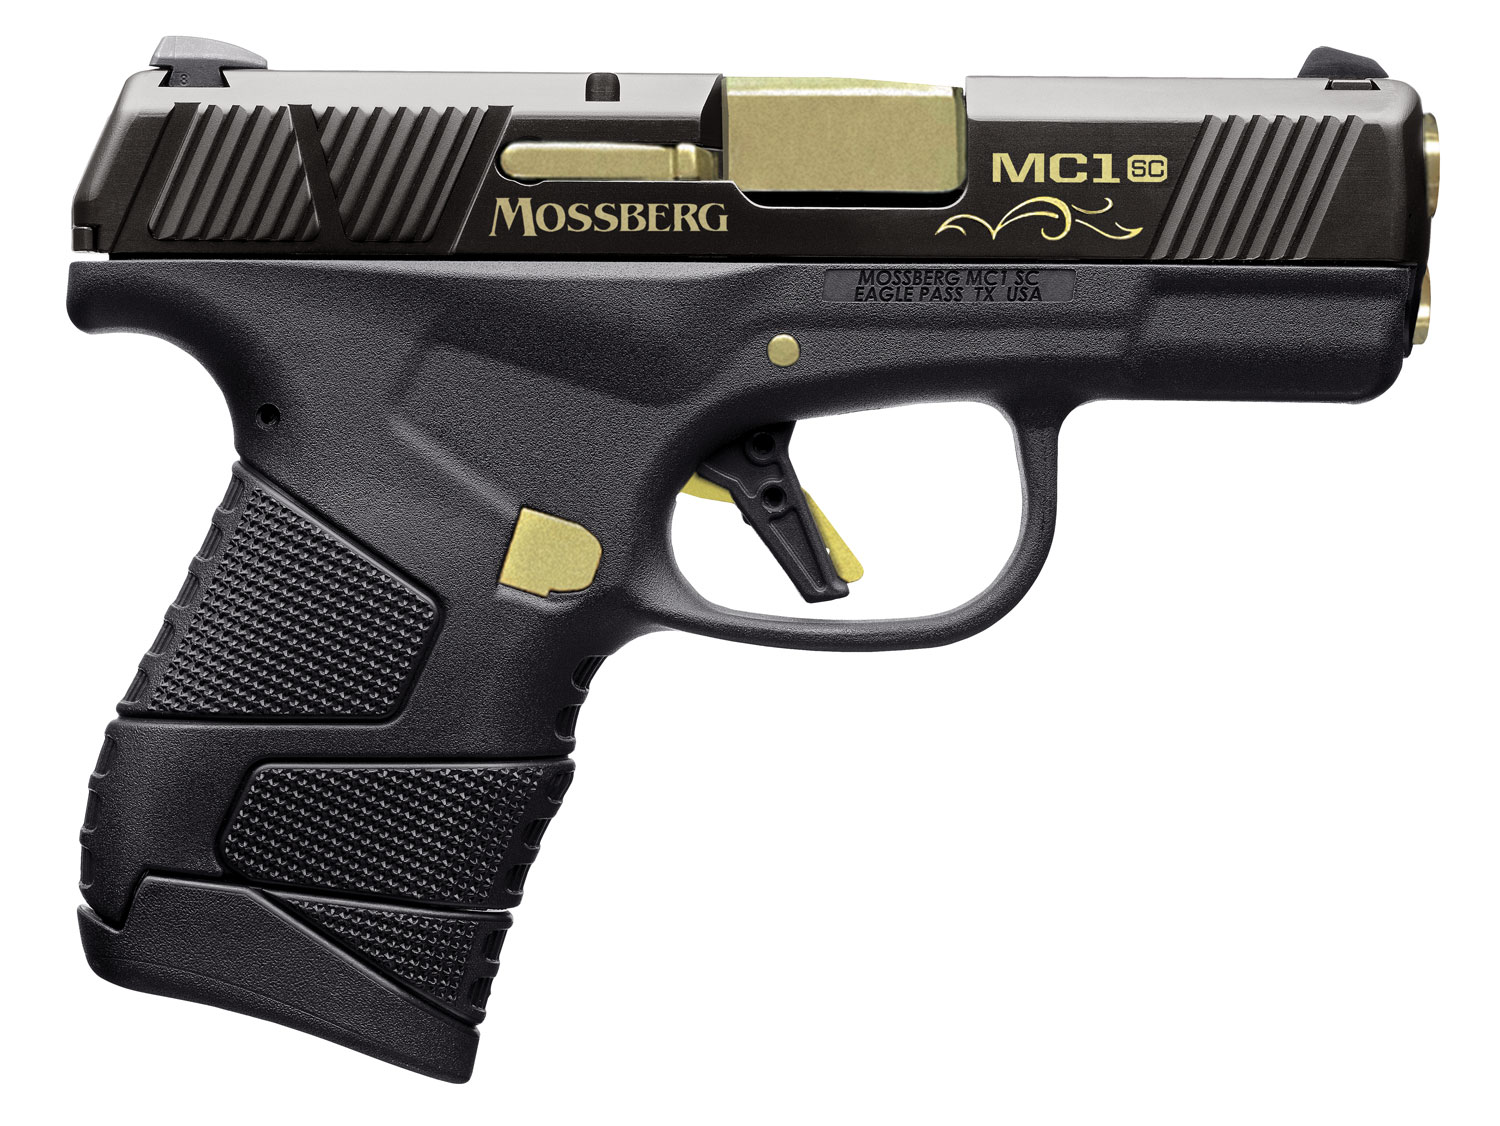 Mossberg MC-1 Centennial Pistol 89005, 9mm, 3.4 in, Black/Gold, 6+1